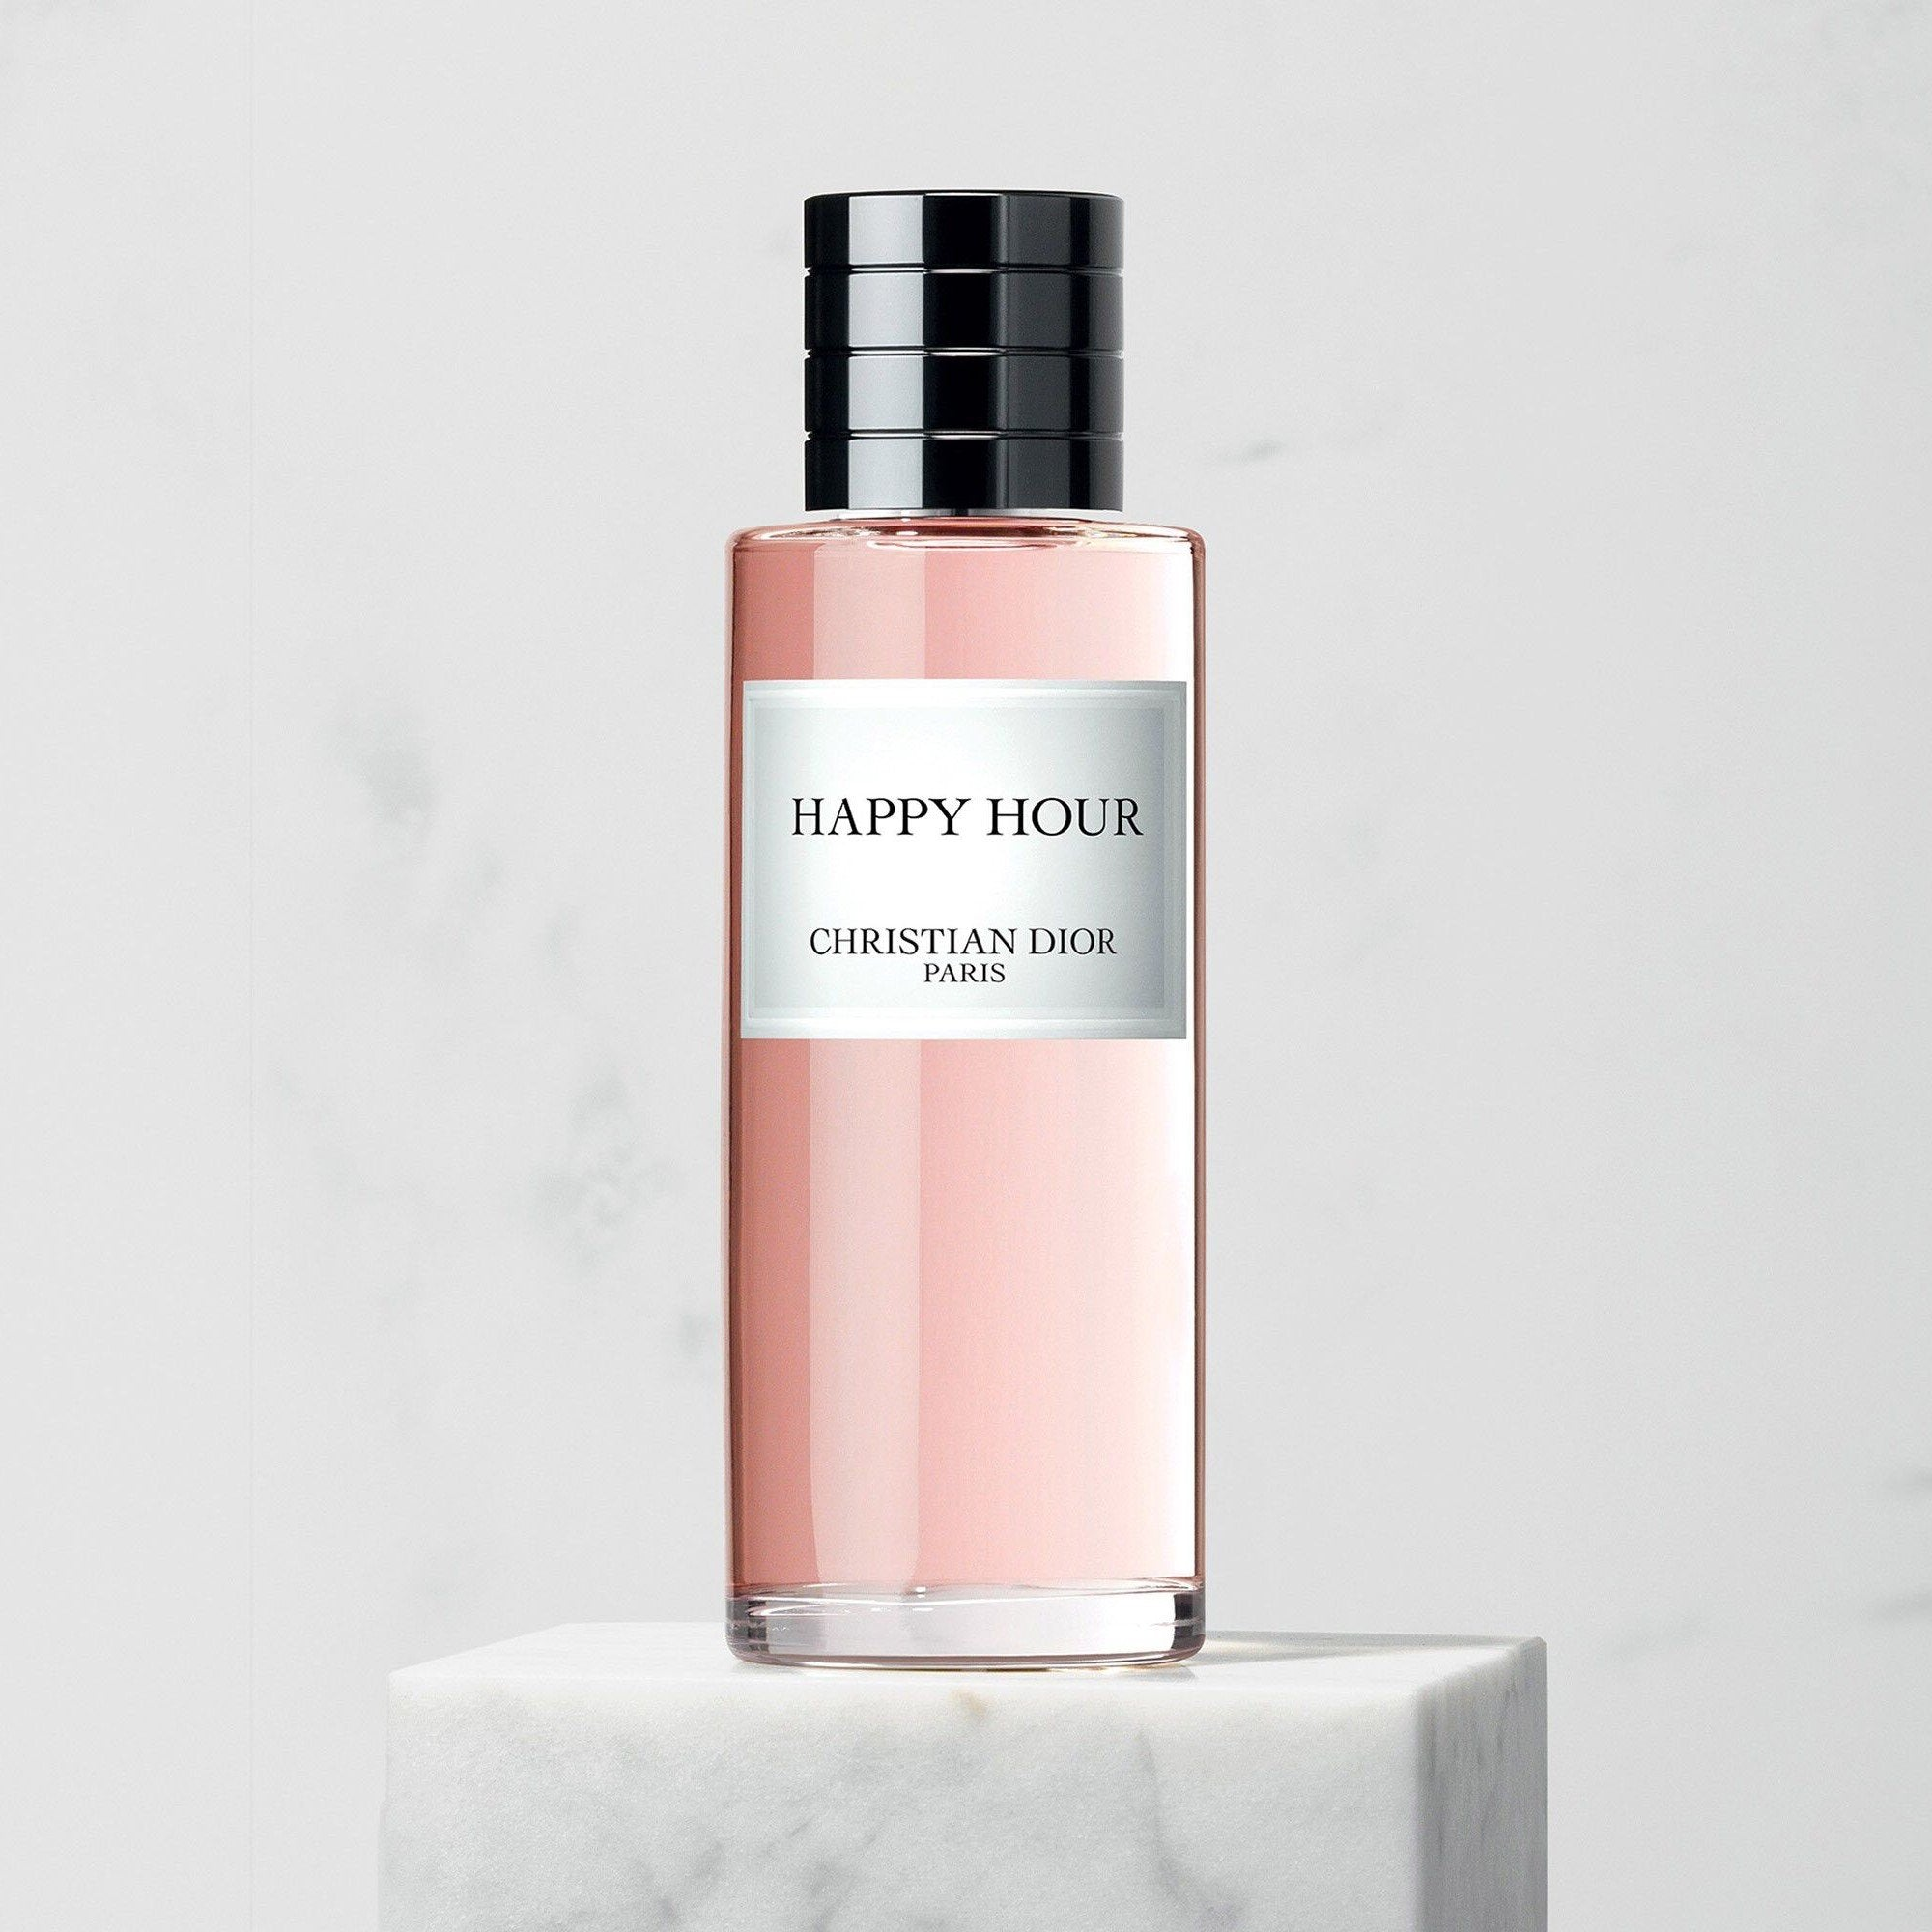 HAPPY HOUR ~ Fragrance